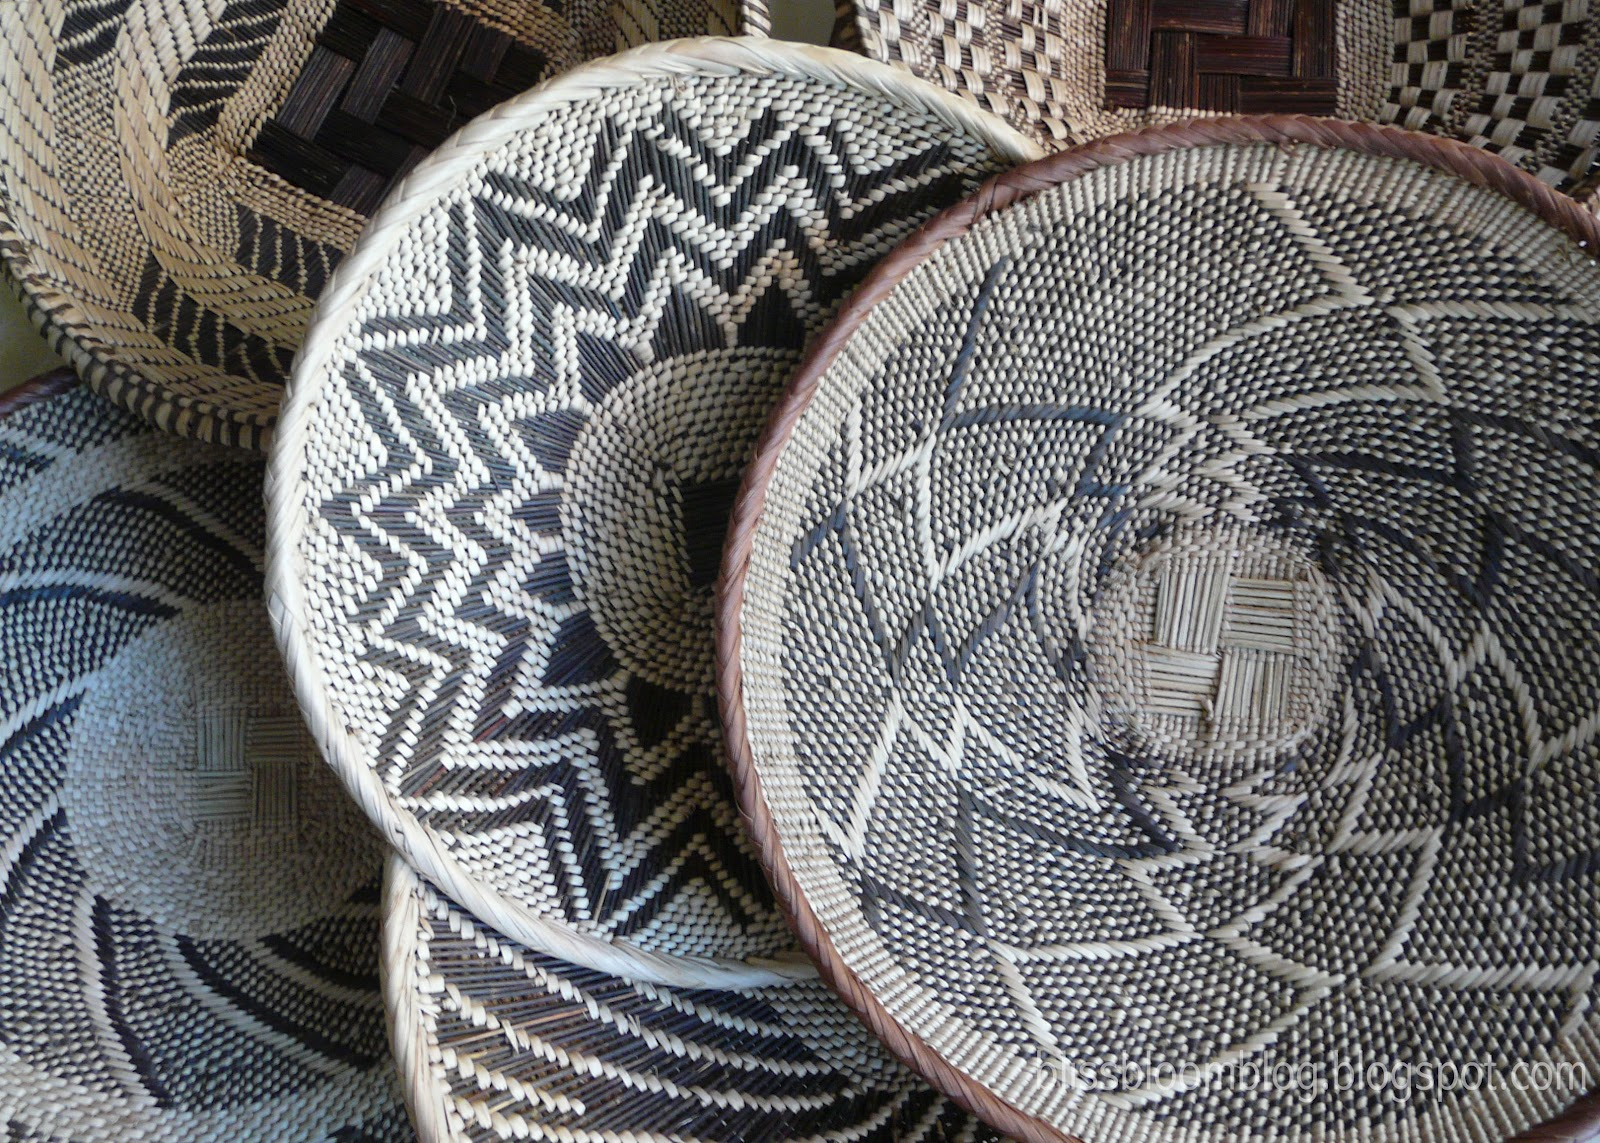 Wall Baskets Decor home] african basket wall decor